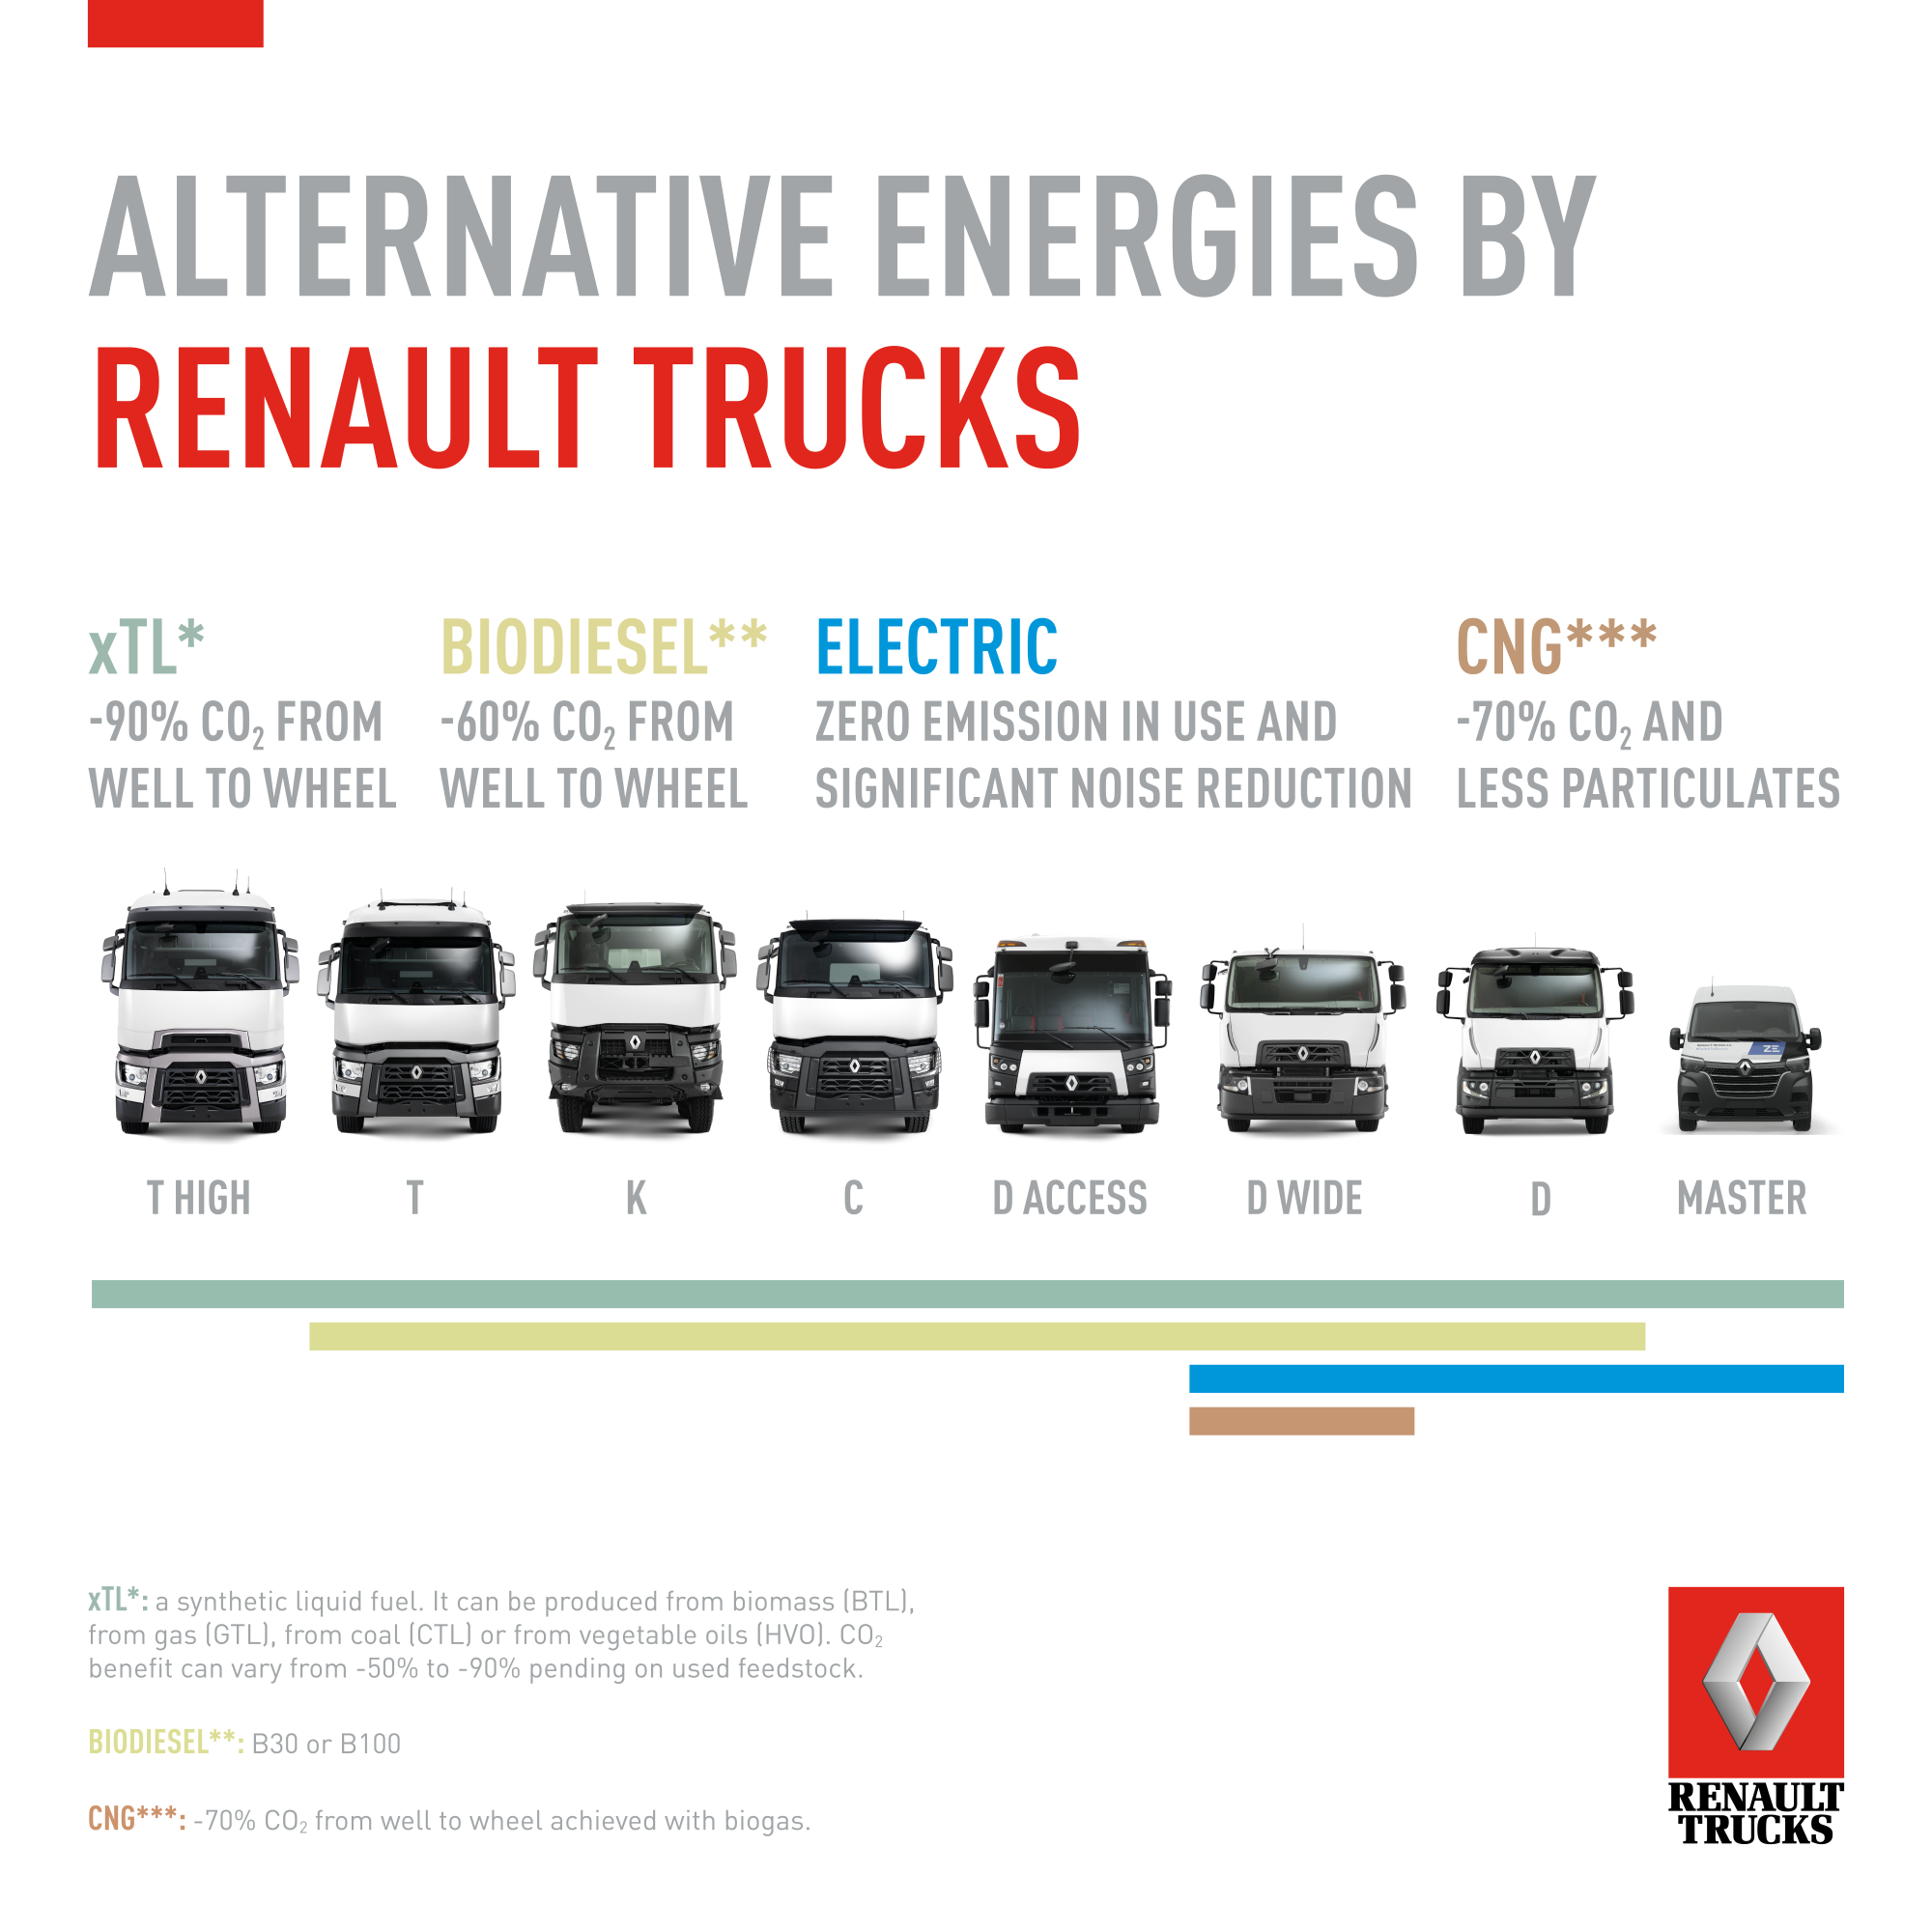 Alternative nergies by Renault Trucks